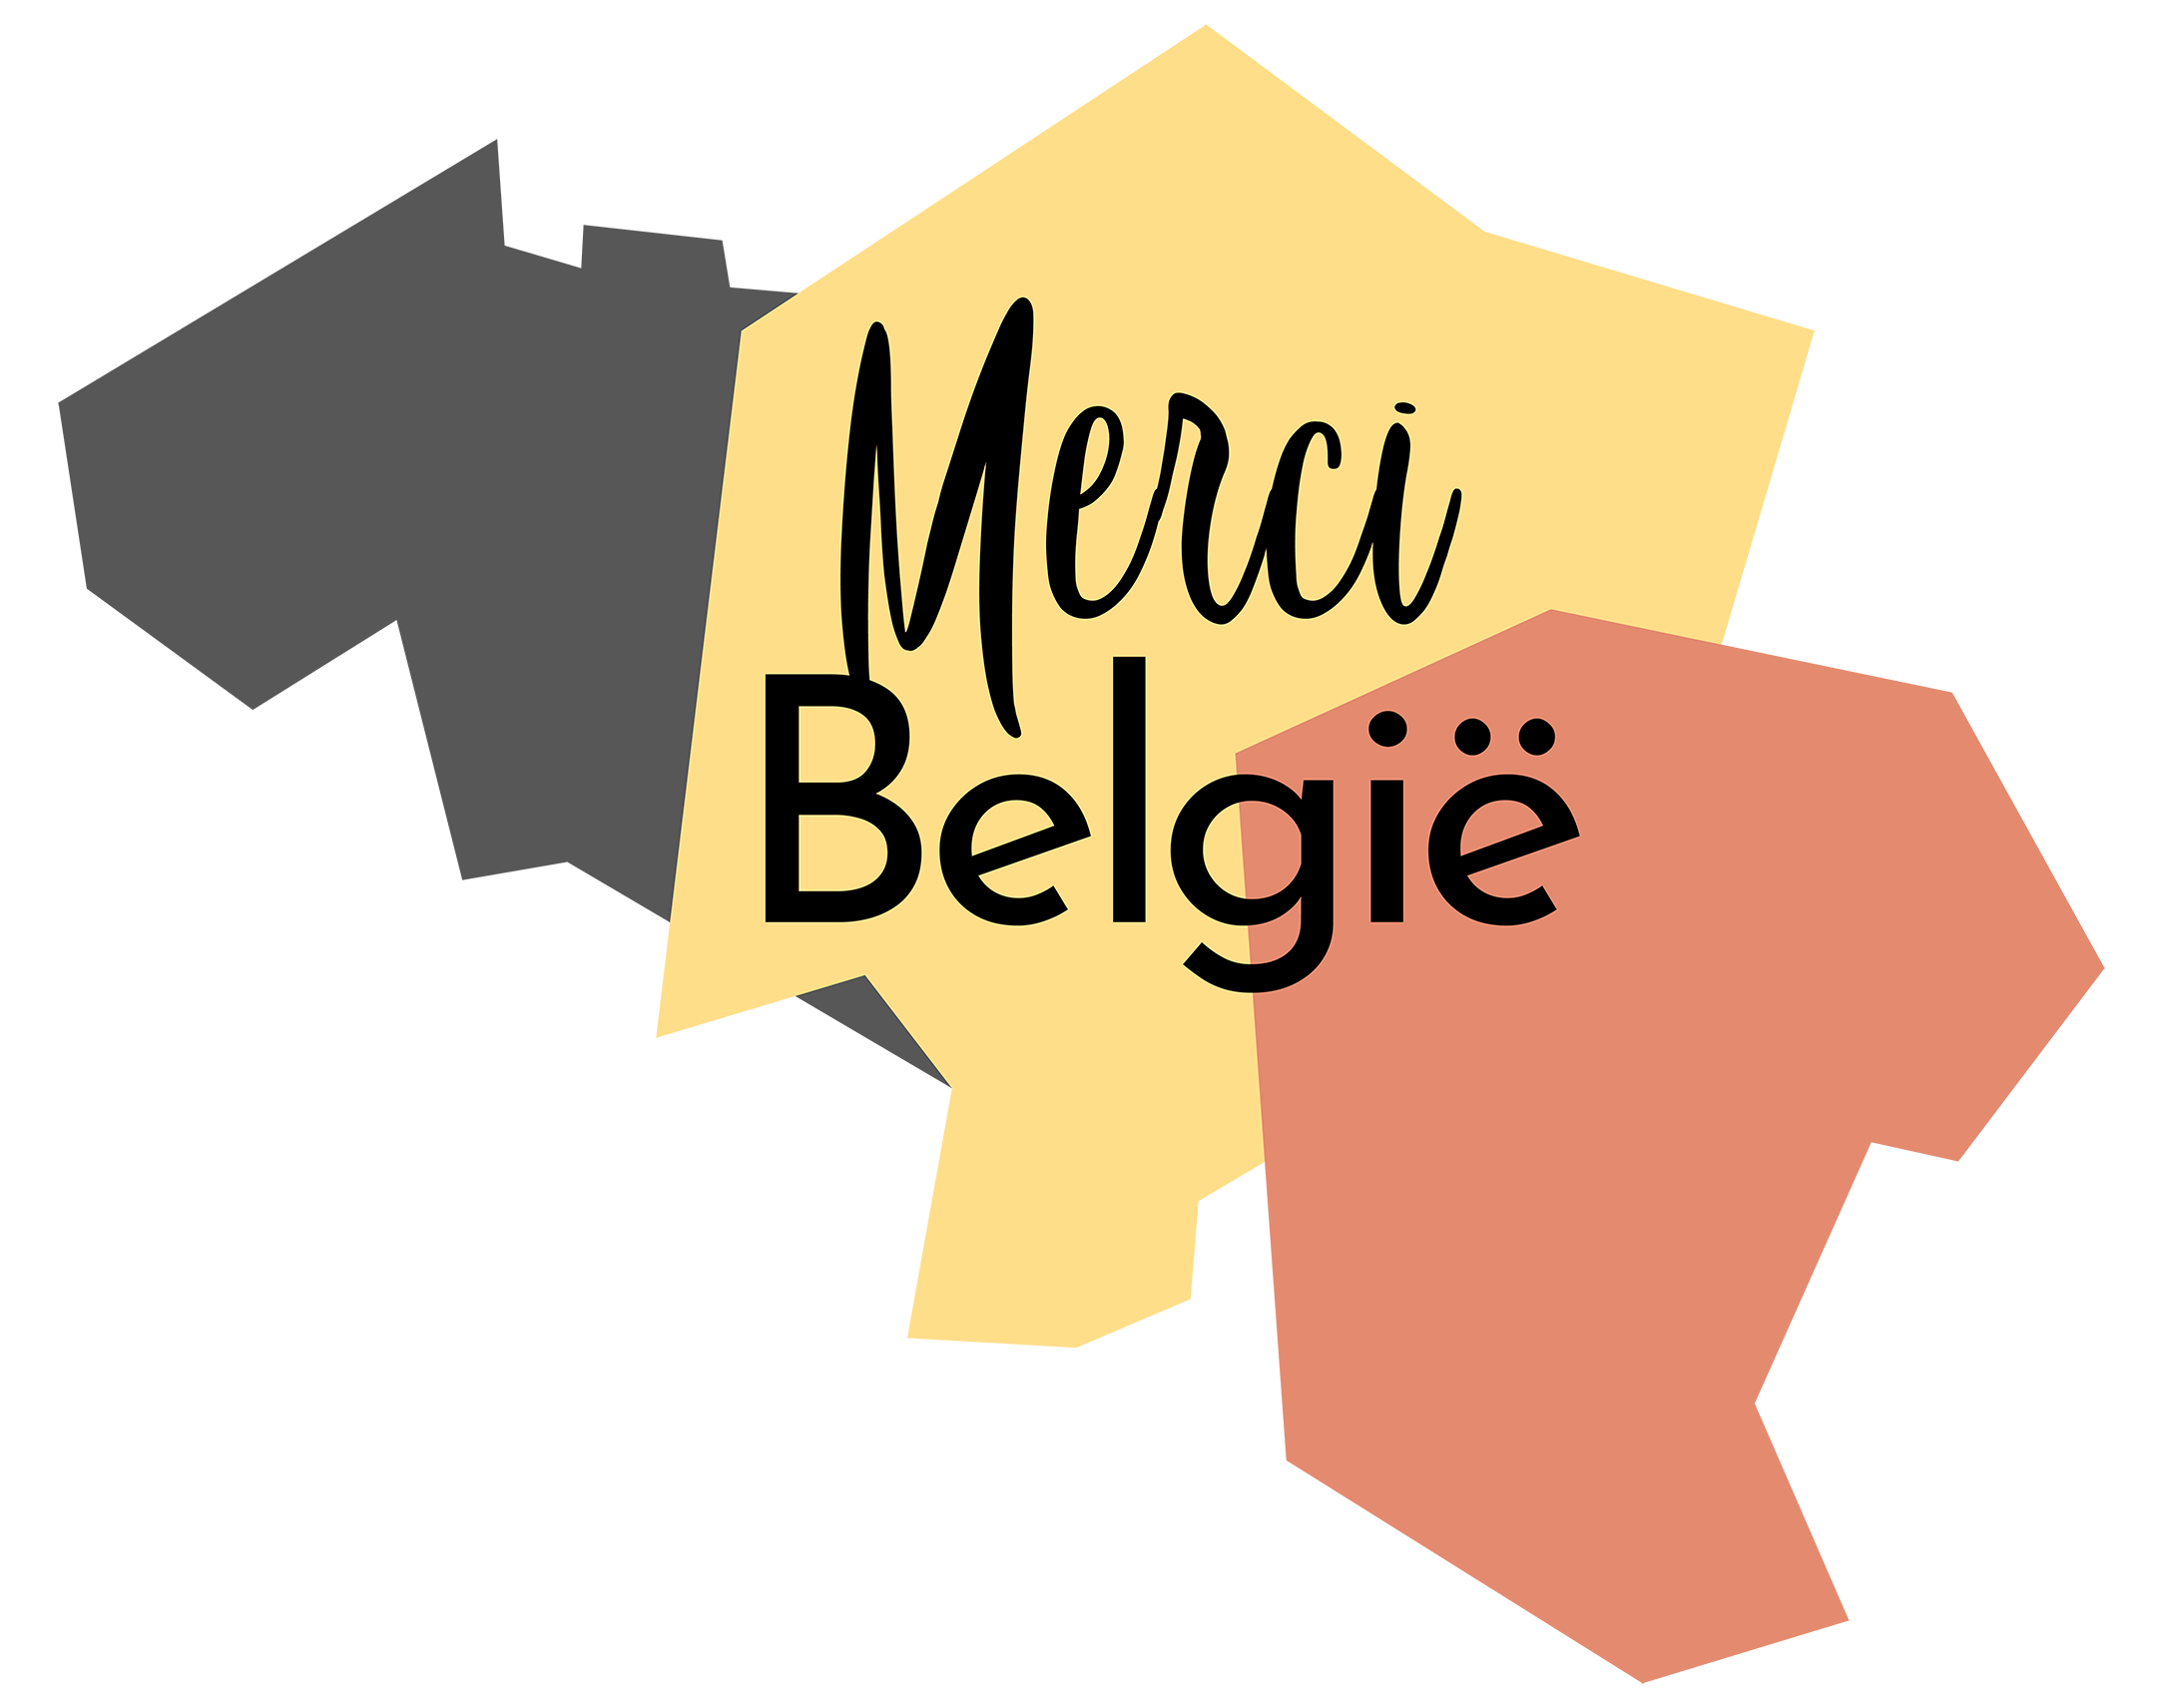 Merci België